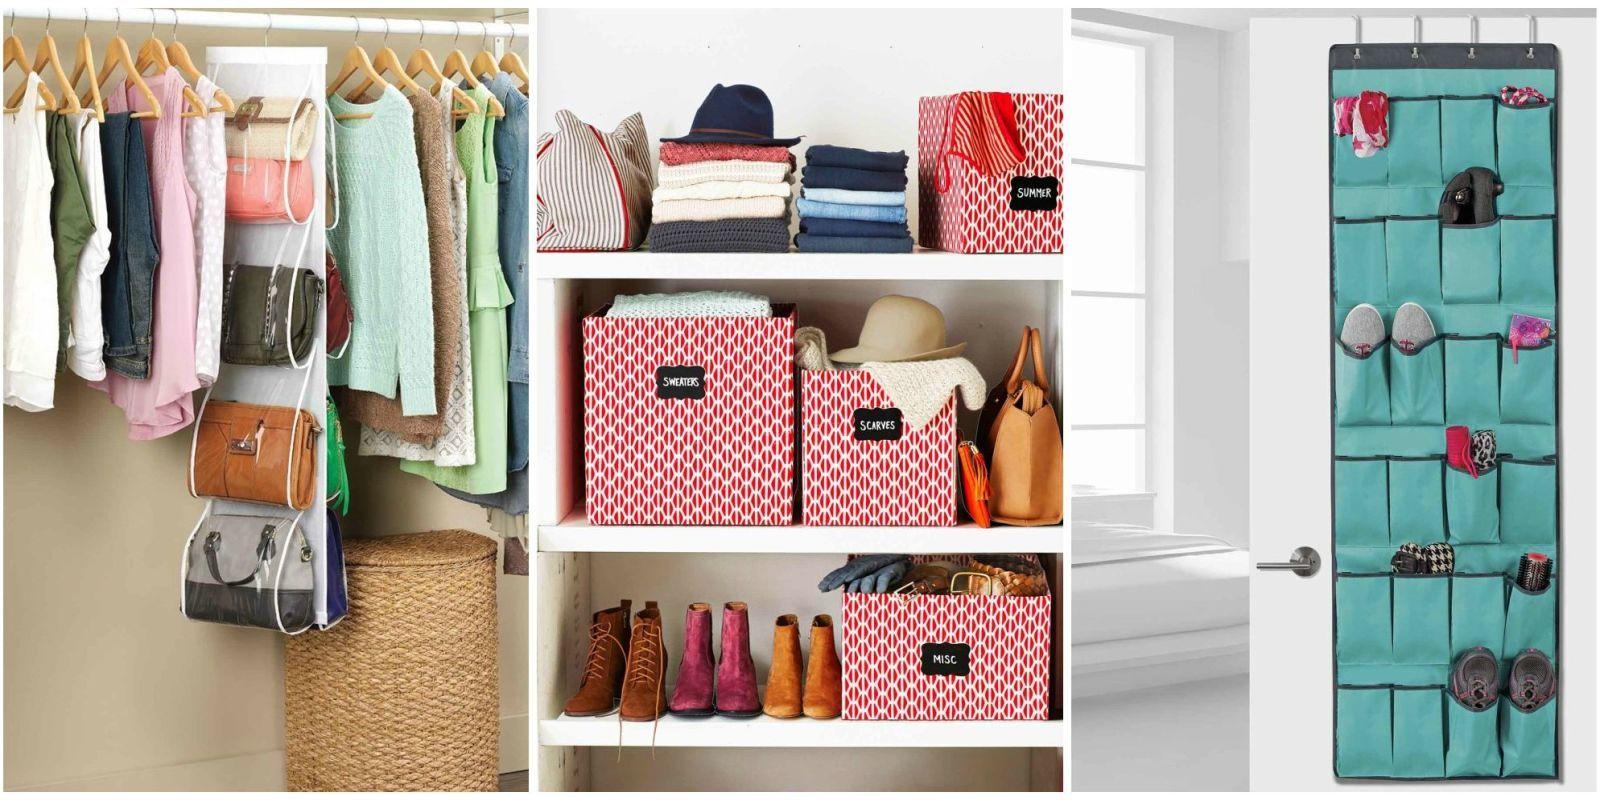 How to organize things in a closet